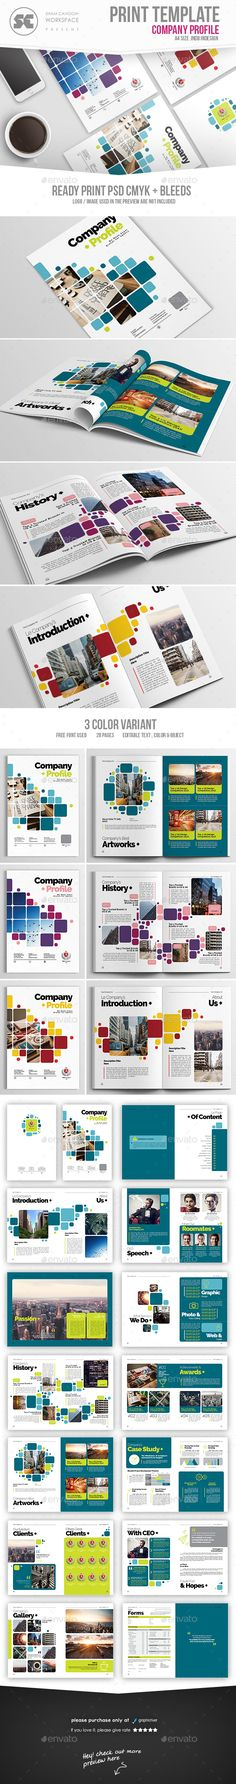 Company Profile Brochure Template InDesign INDD. Download here: https://graphicriver.net/item/company-profile/17354491?ref=ksioks